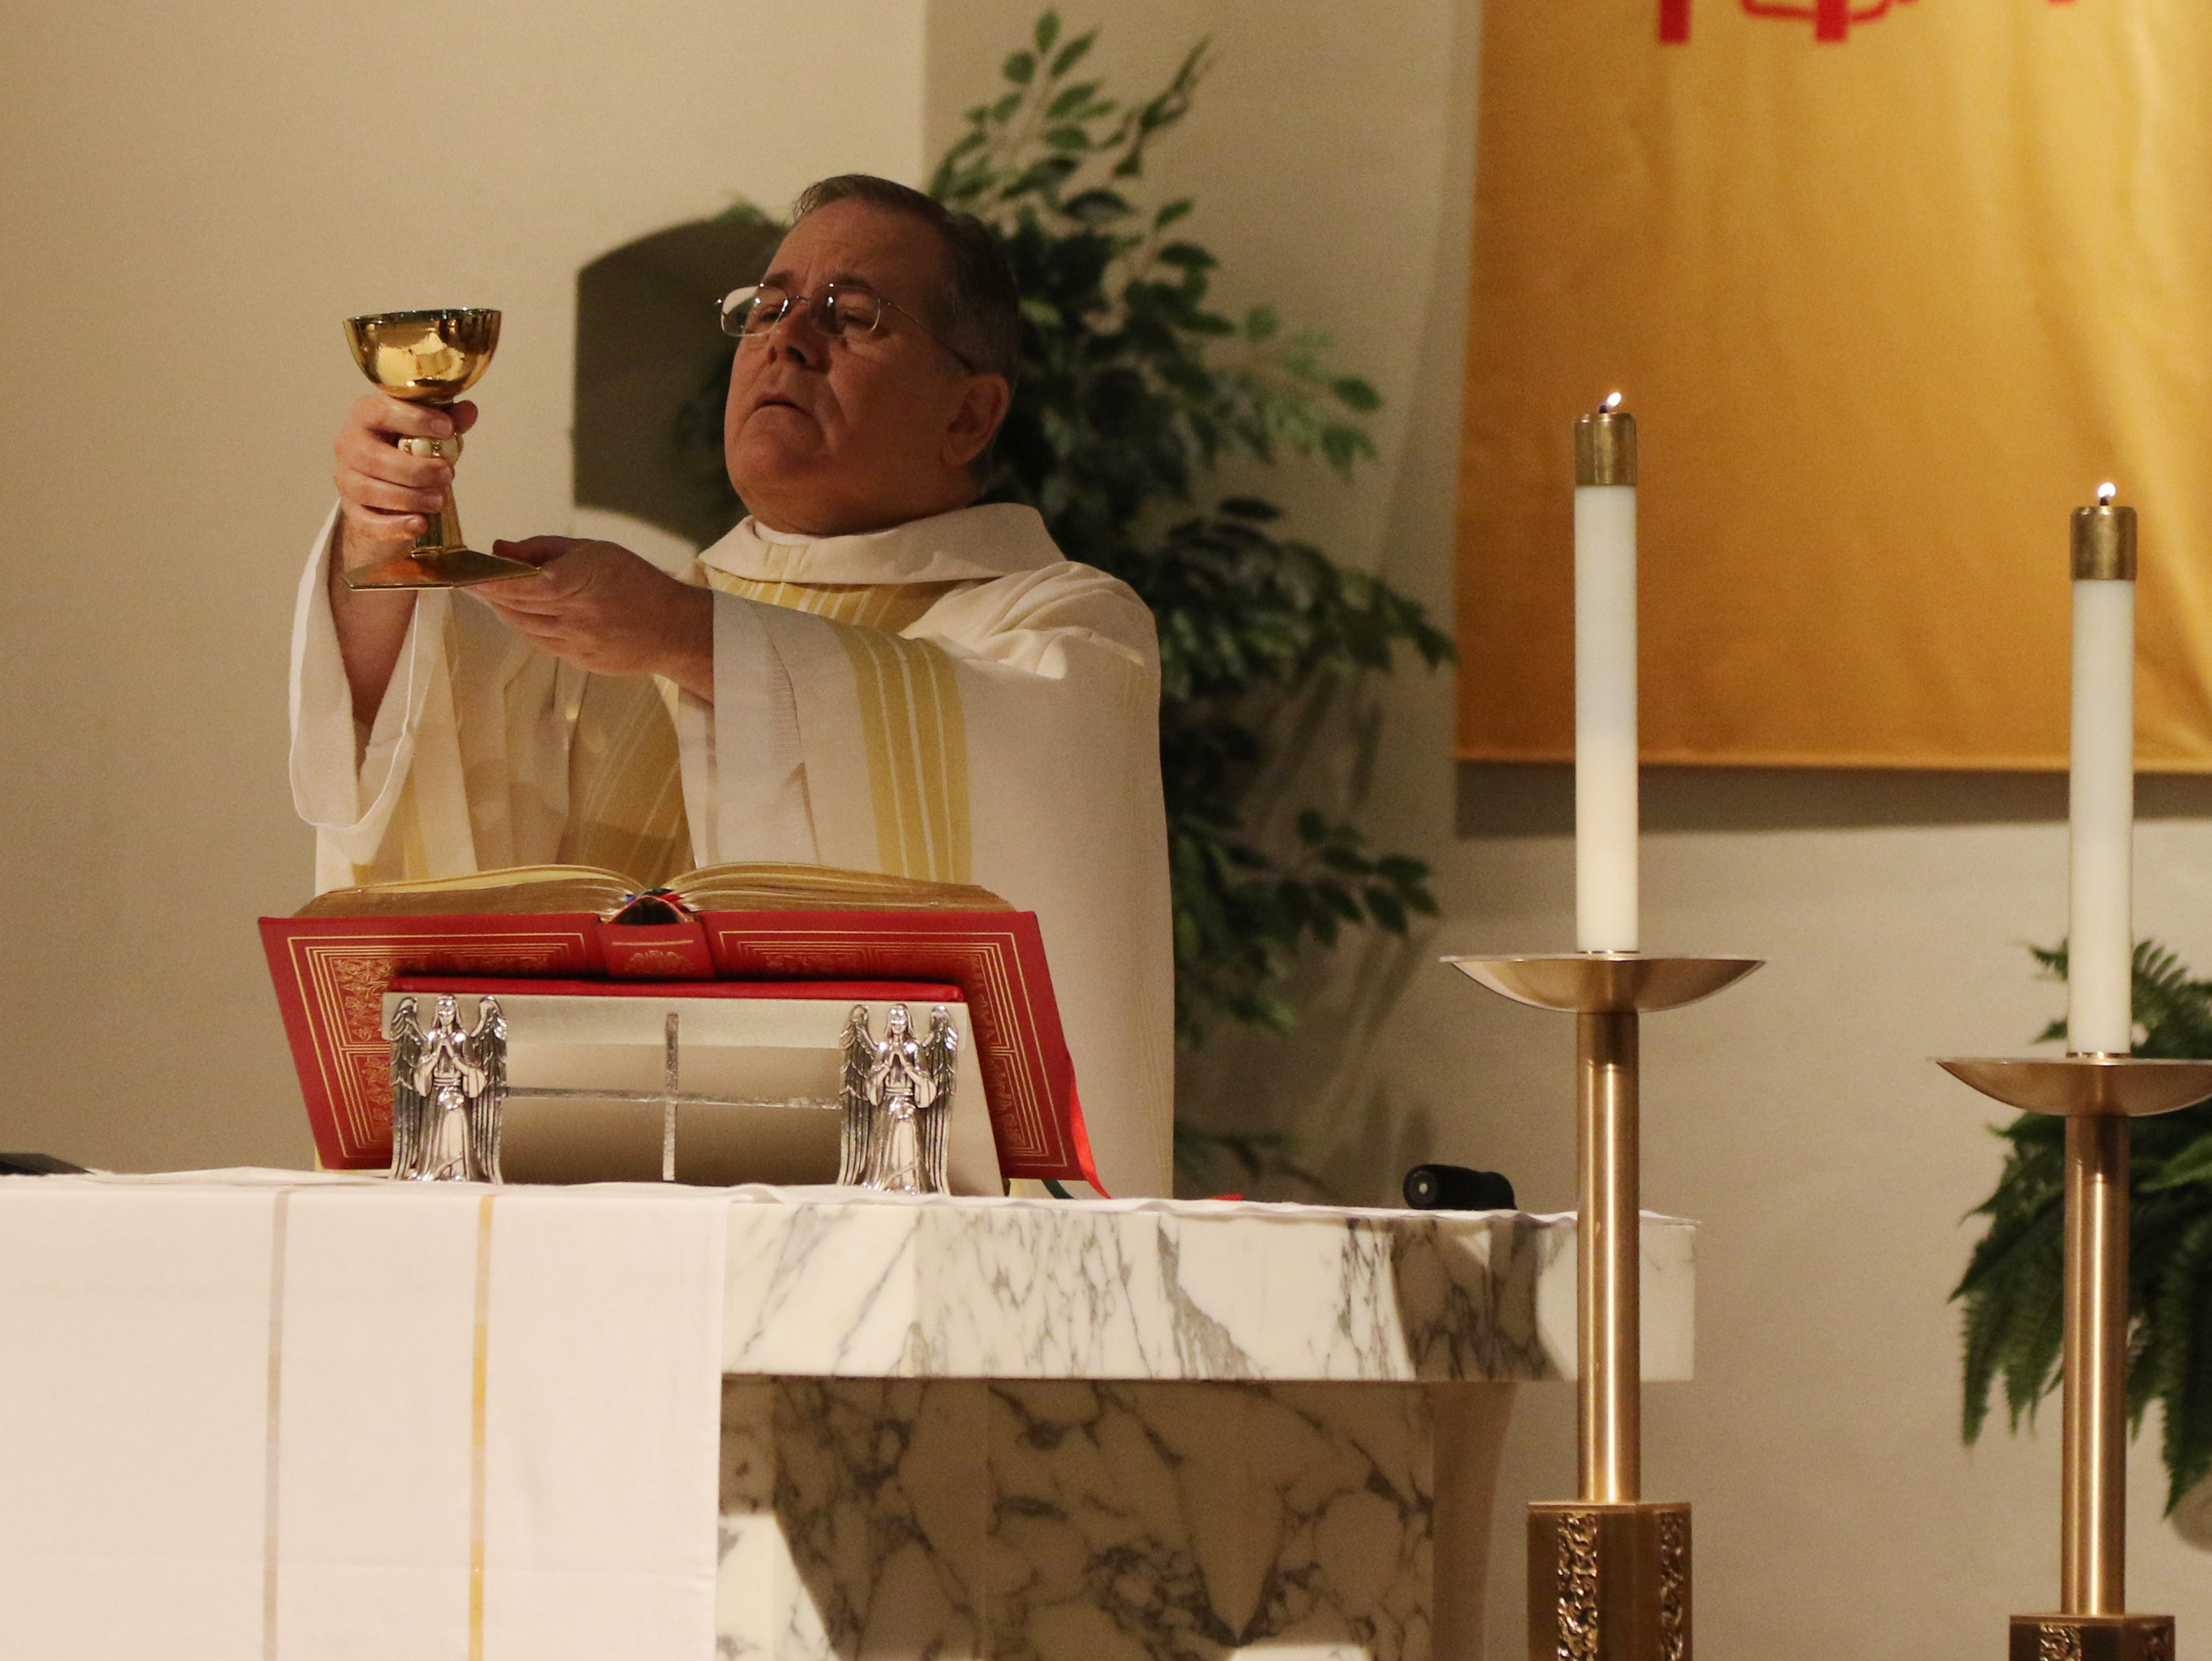 Father James Dunfee says Mass at the 8 am services at St. Agnes Church in Mingo Junction.